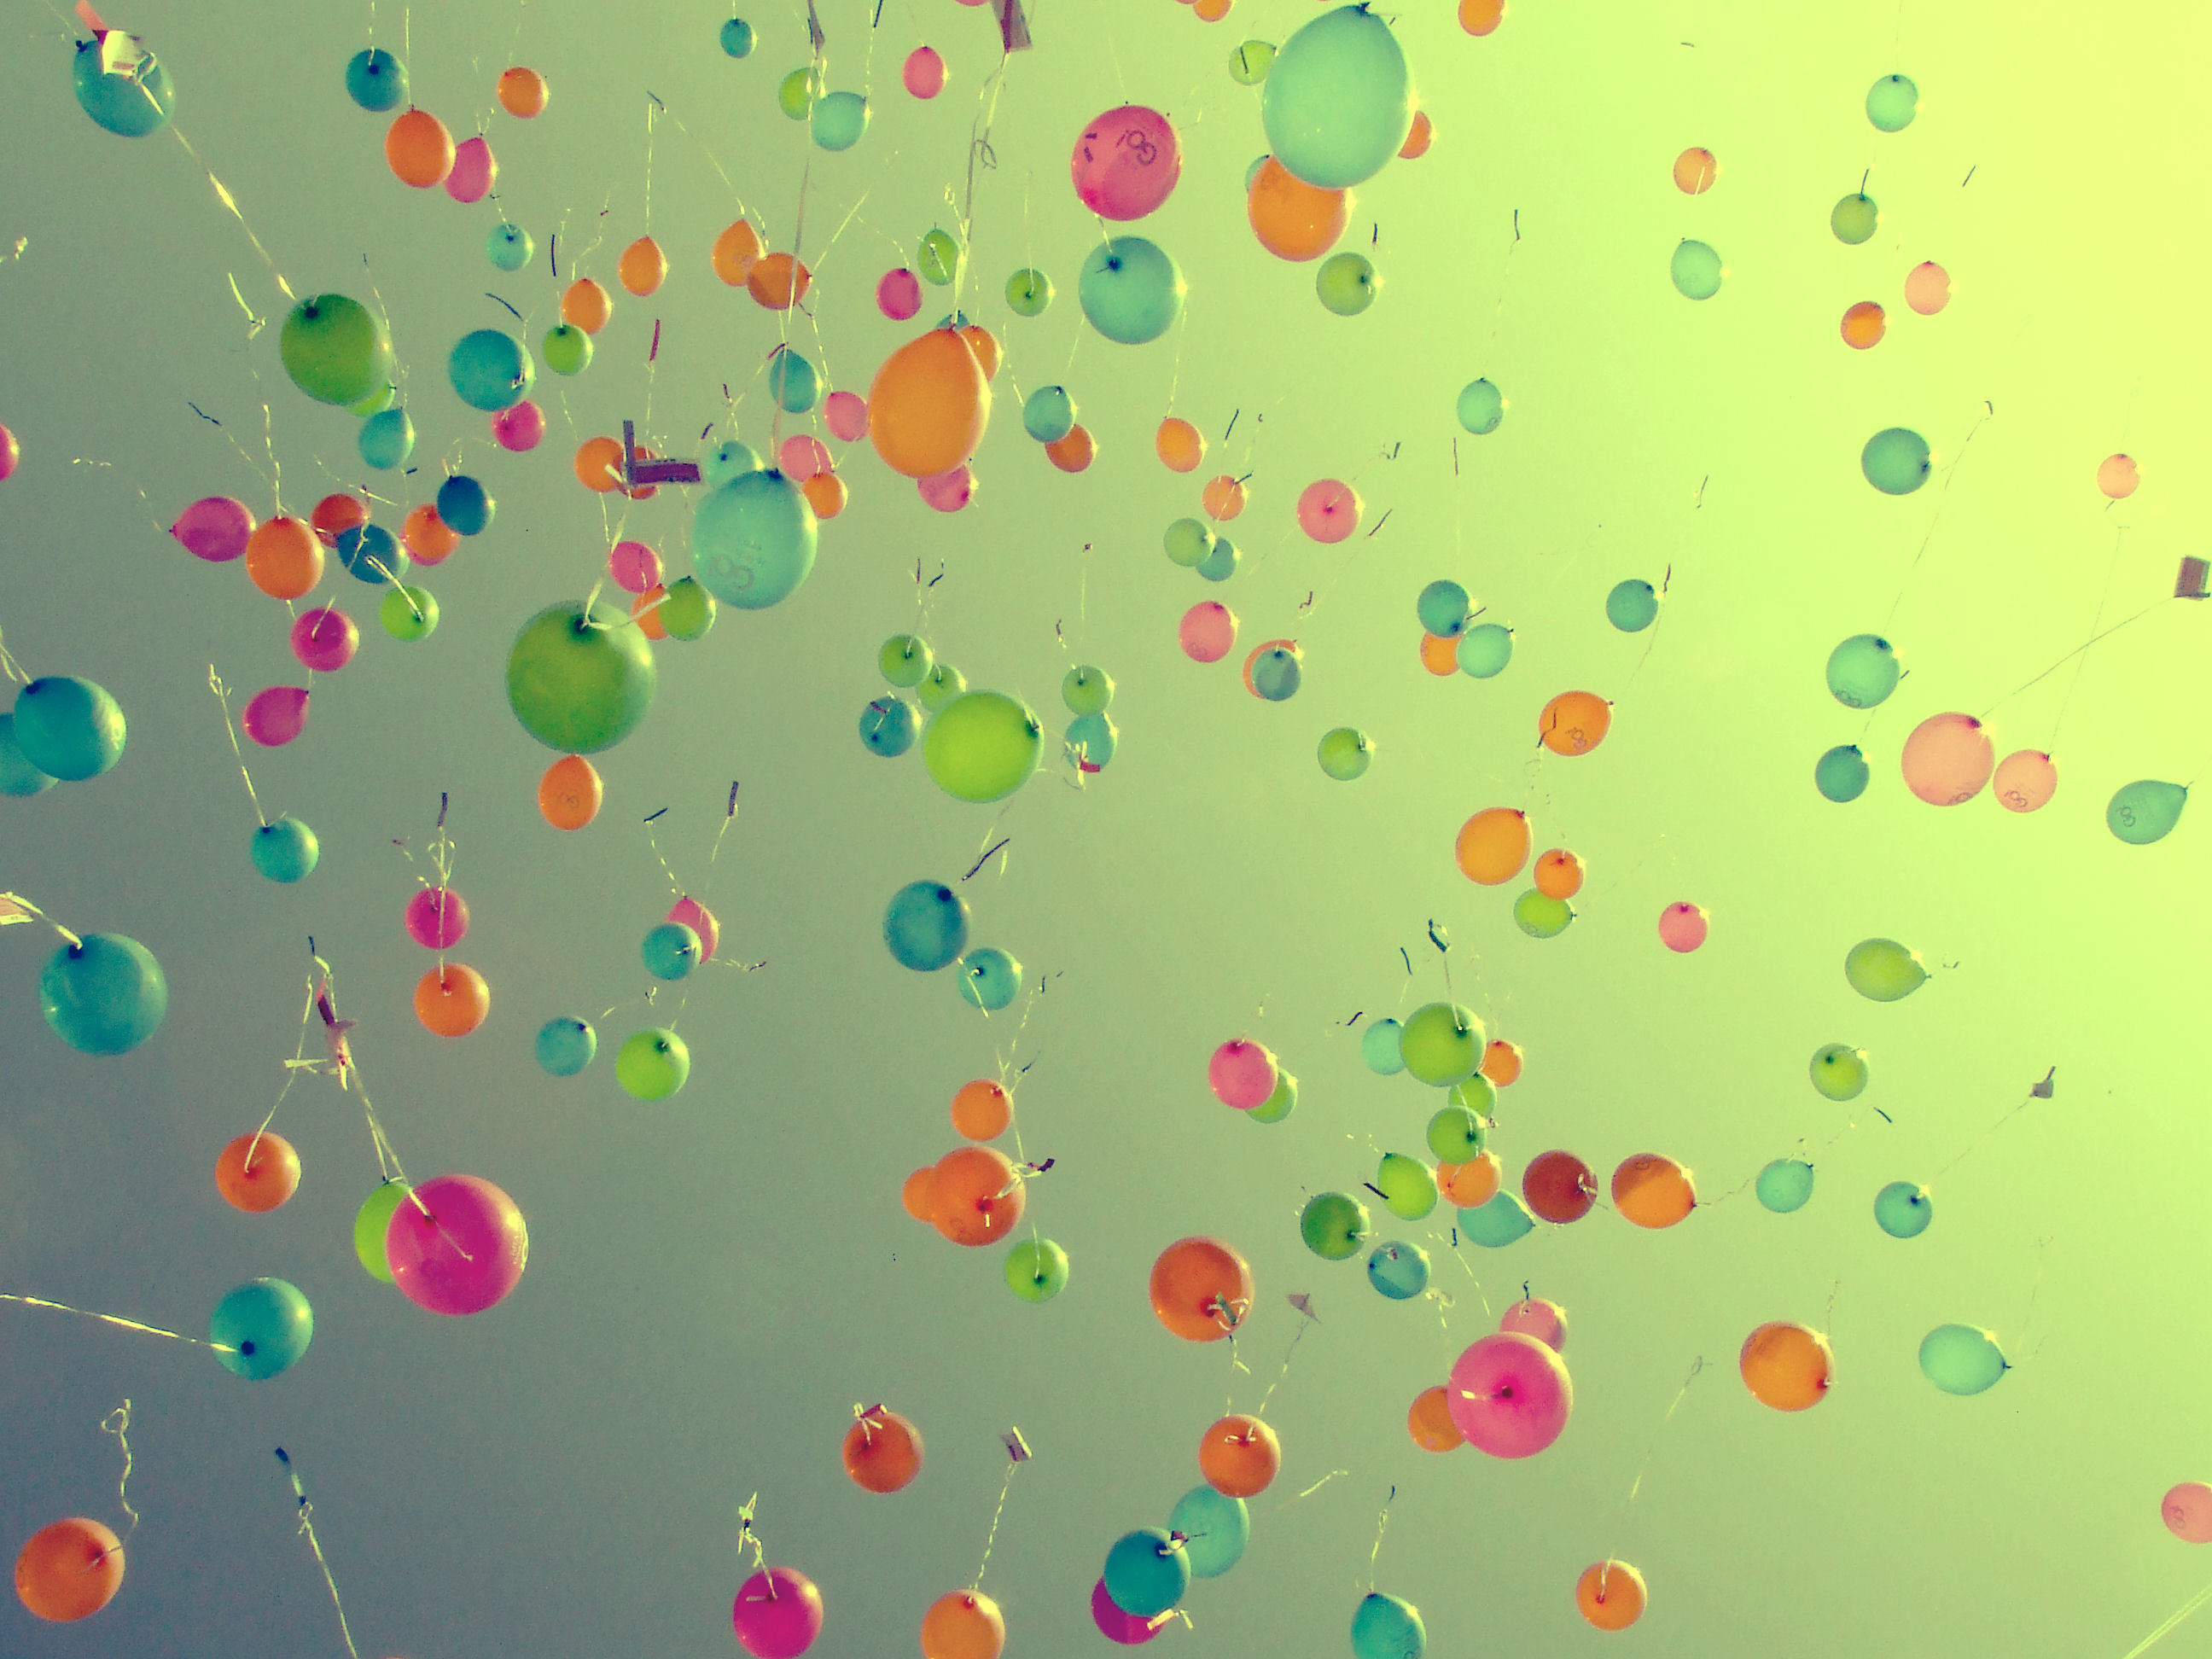 multicolor Balloons skyscapes